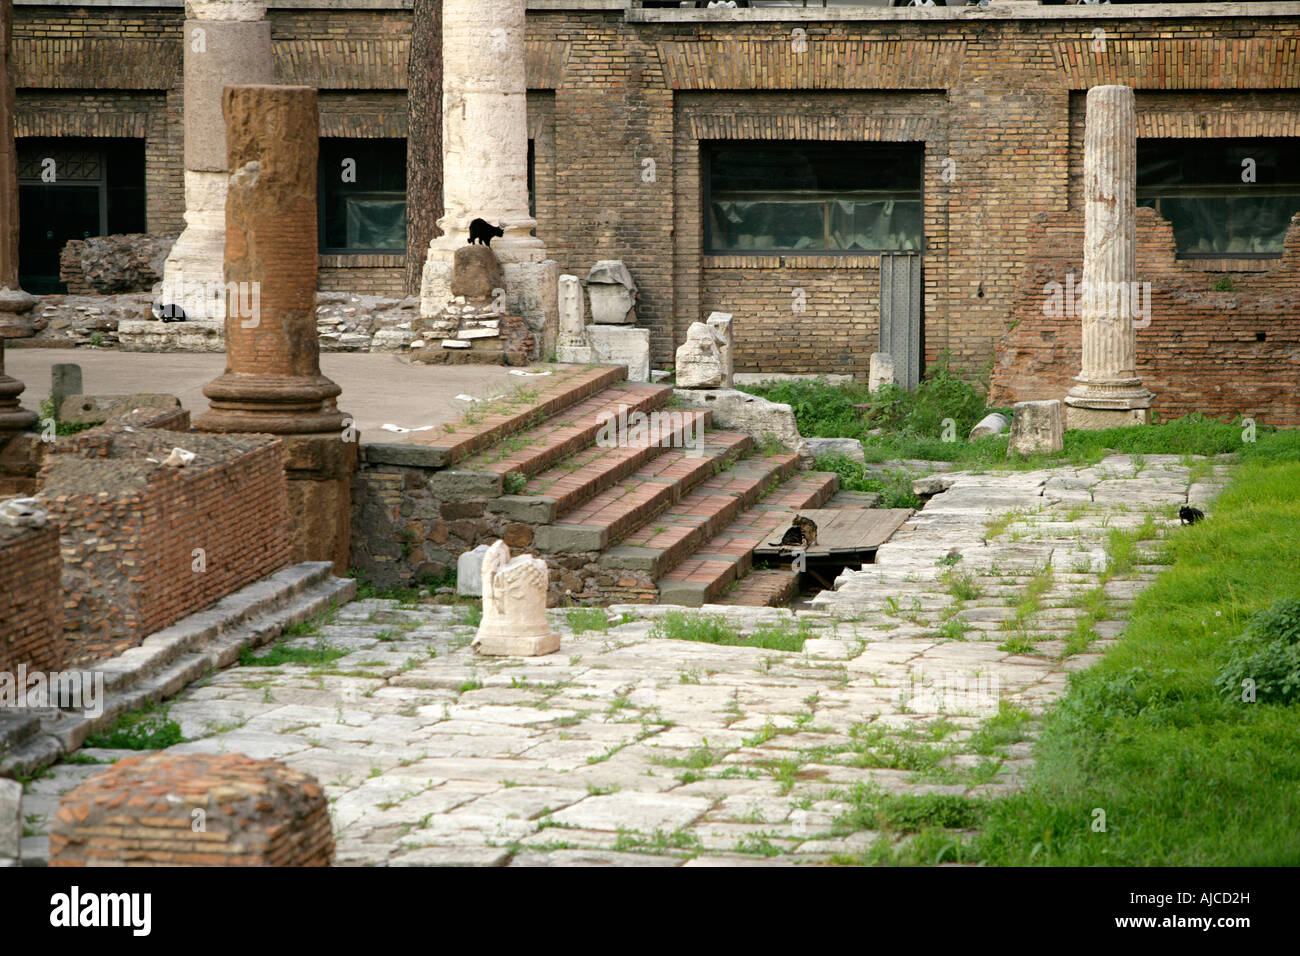 Earliest Ancient Roman Temples In The Largo Di Torre Argentina, Rome, Italy - Stock Image